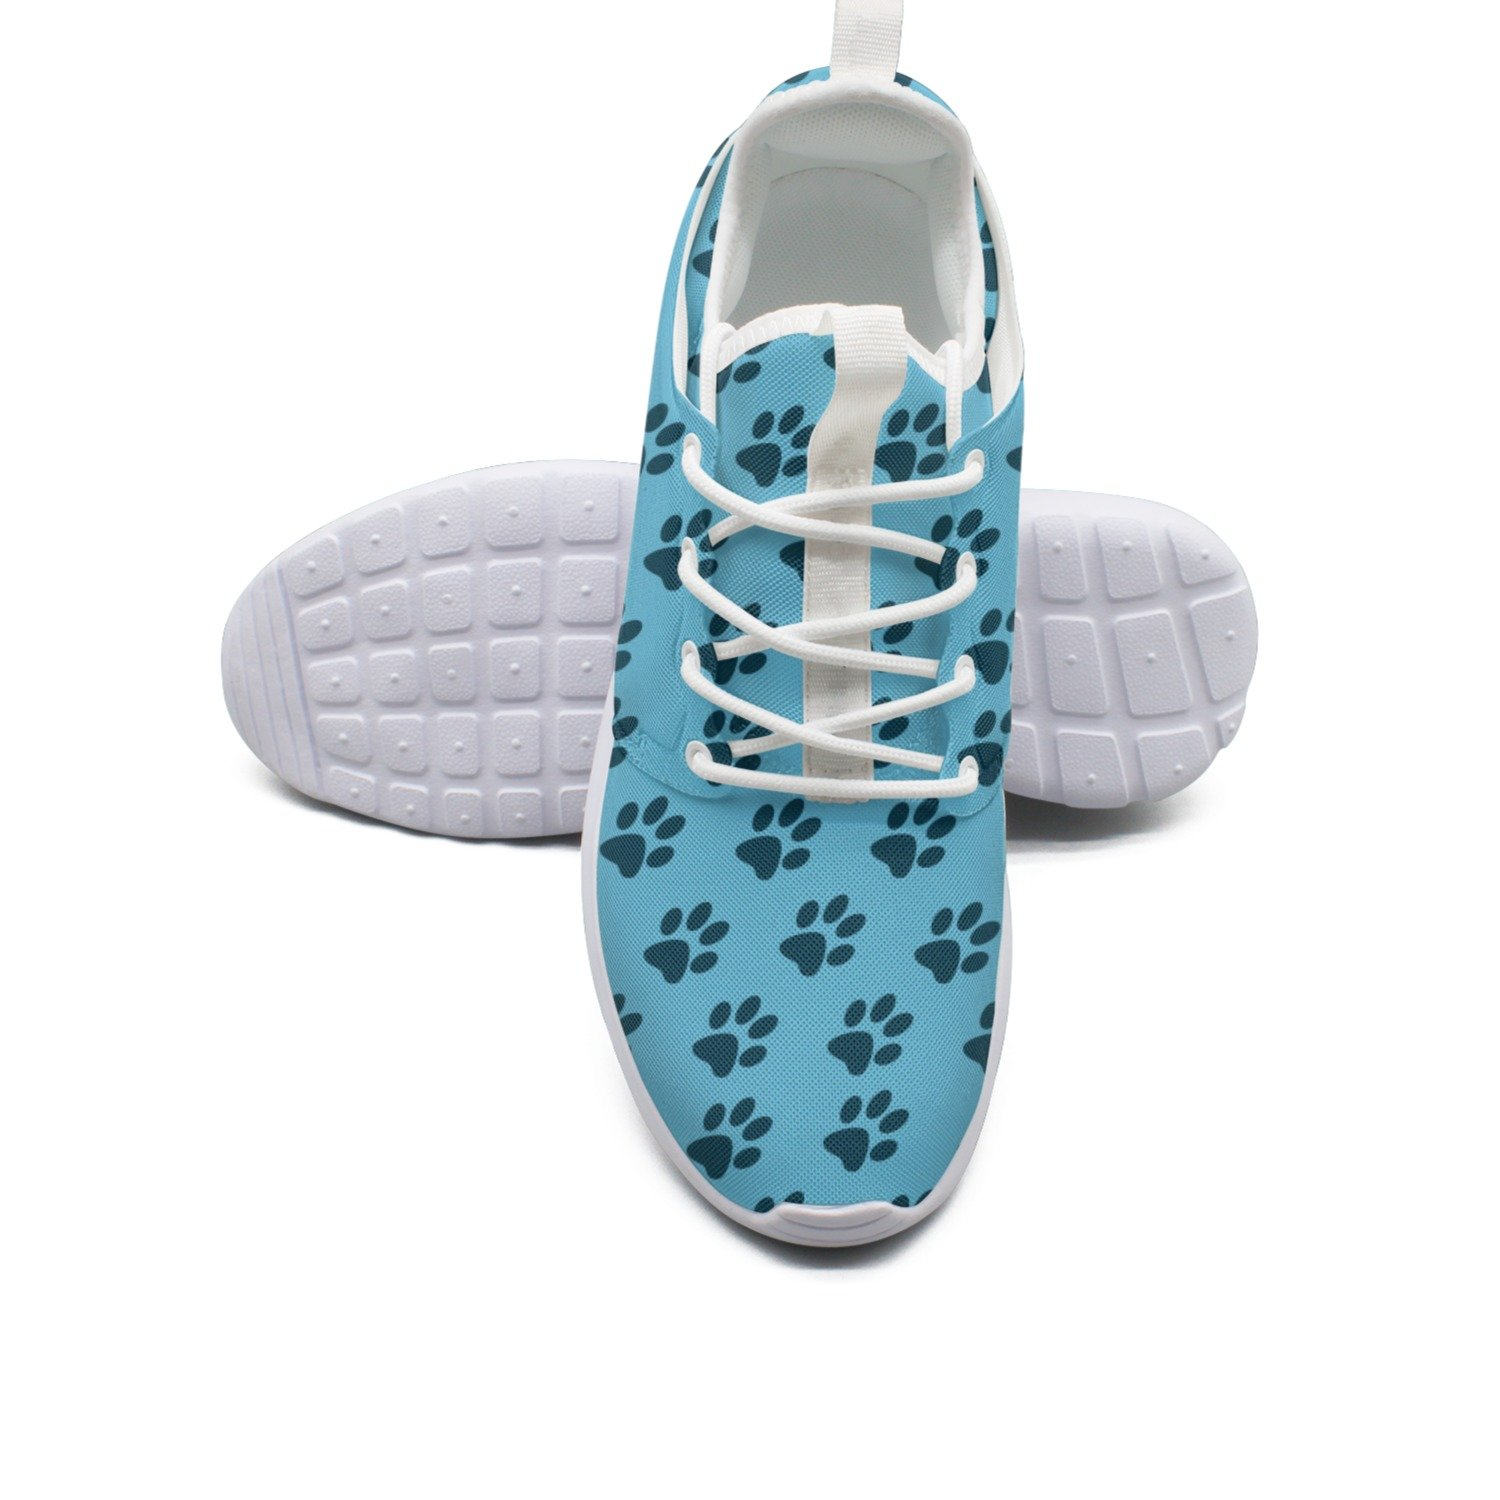 FUFGT Cat Paws And Dog Paws Womens Neutral Design Running Shoes Navy Active